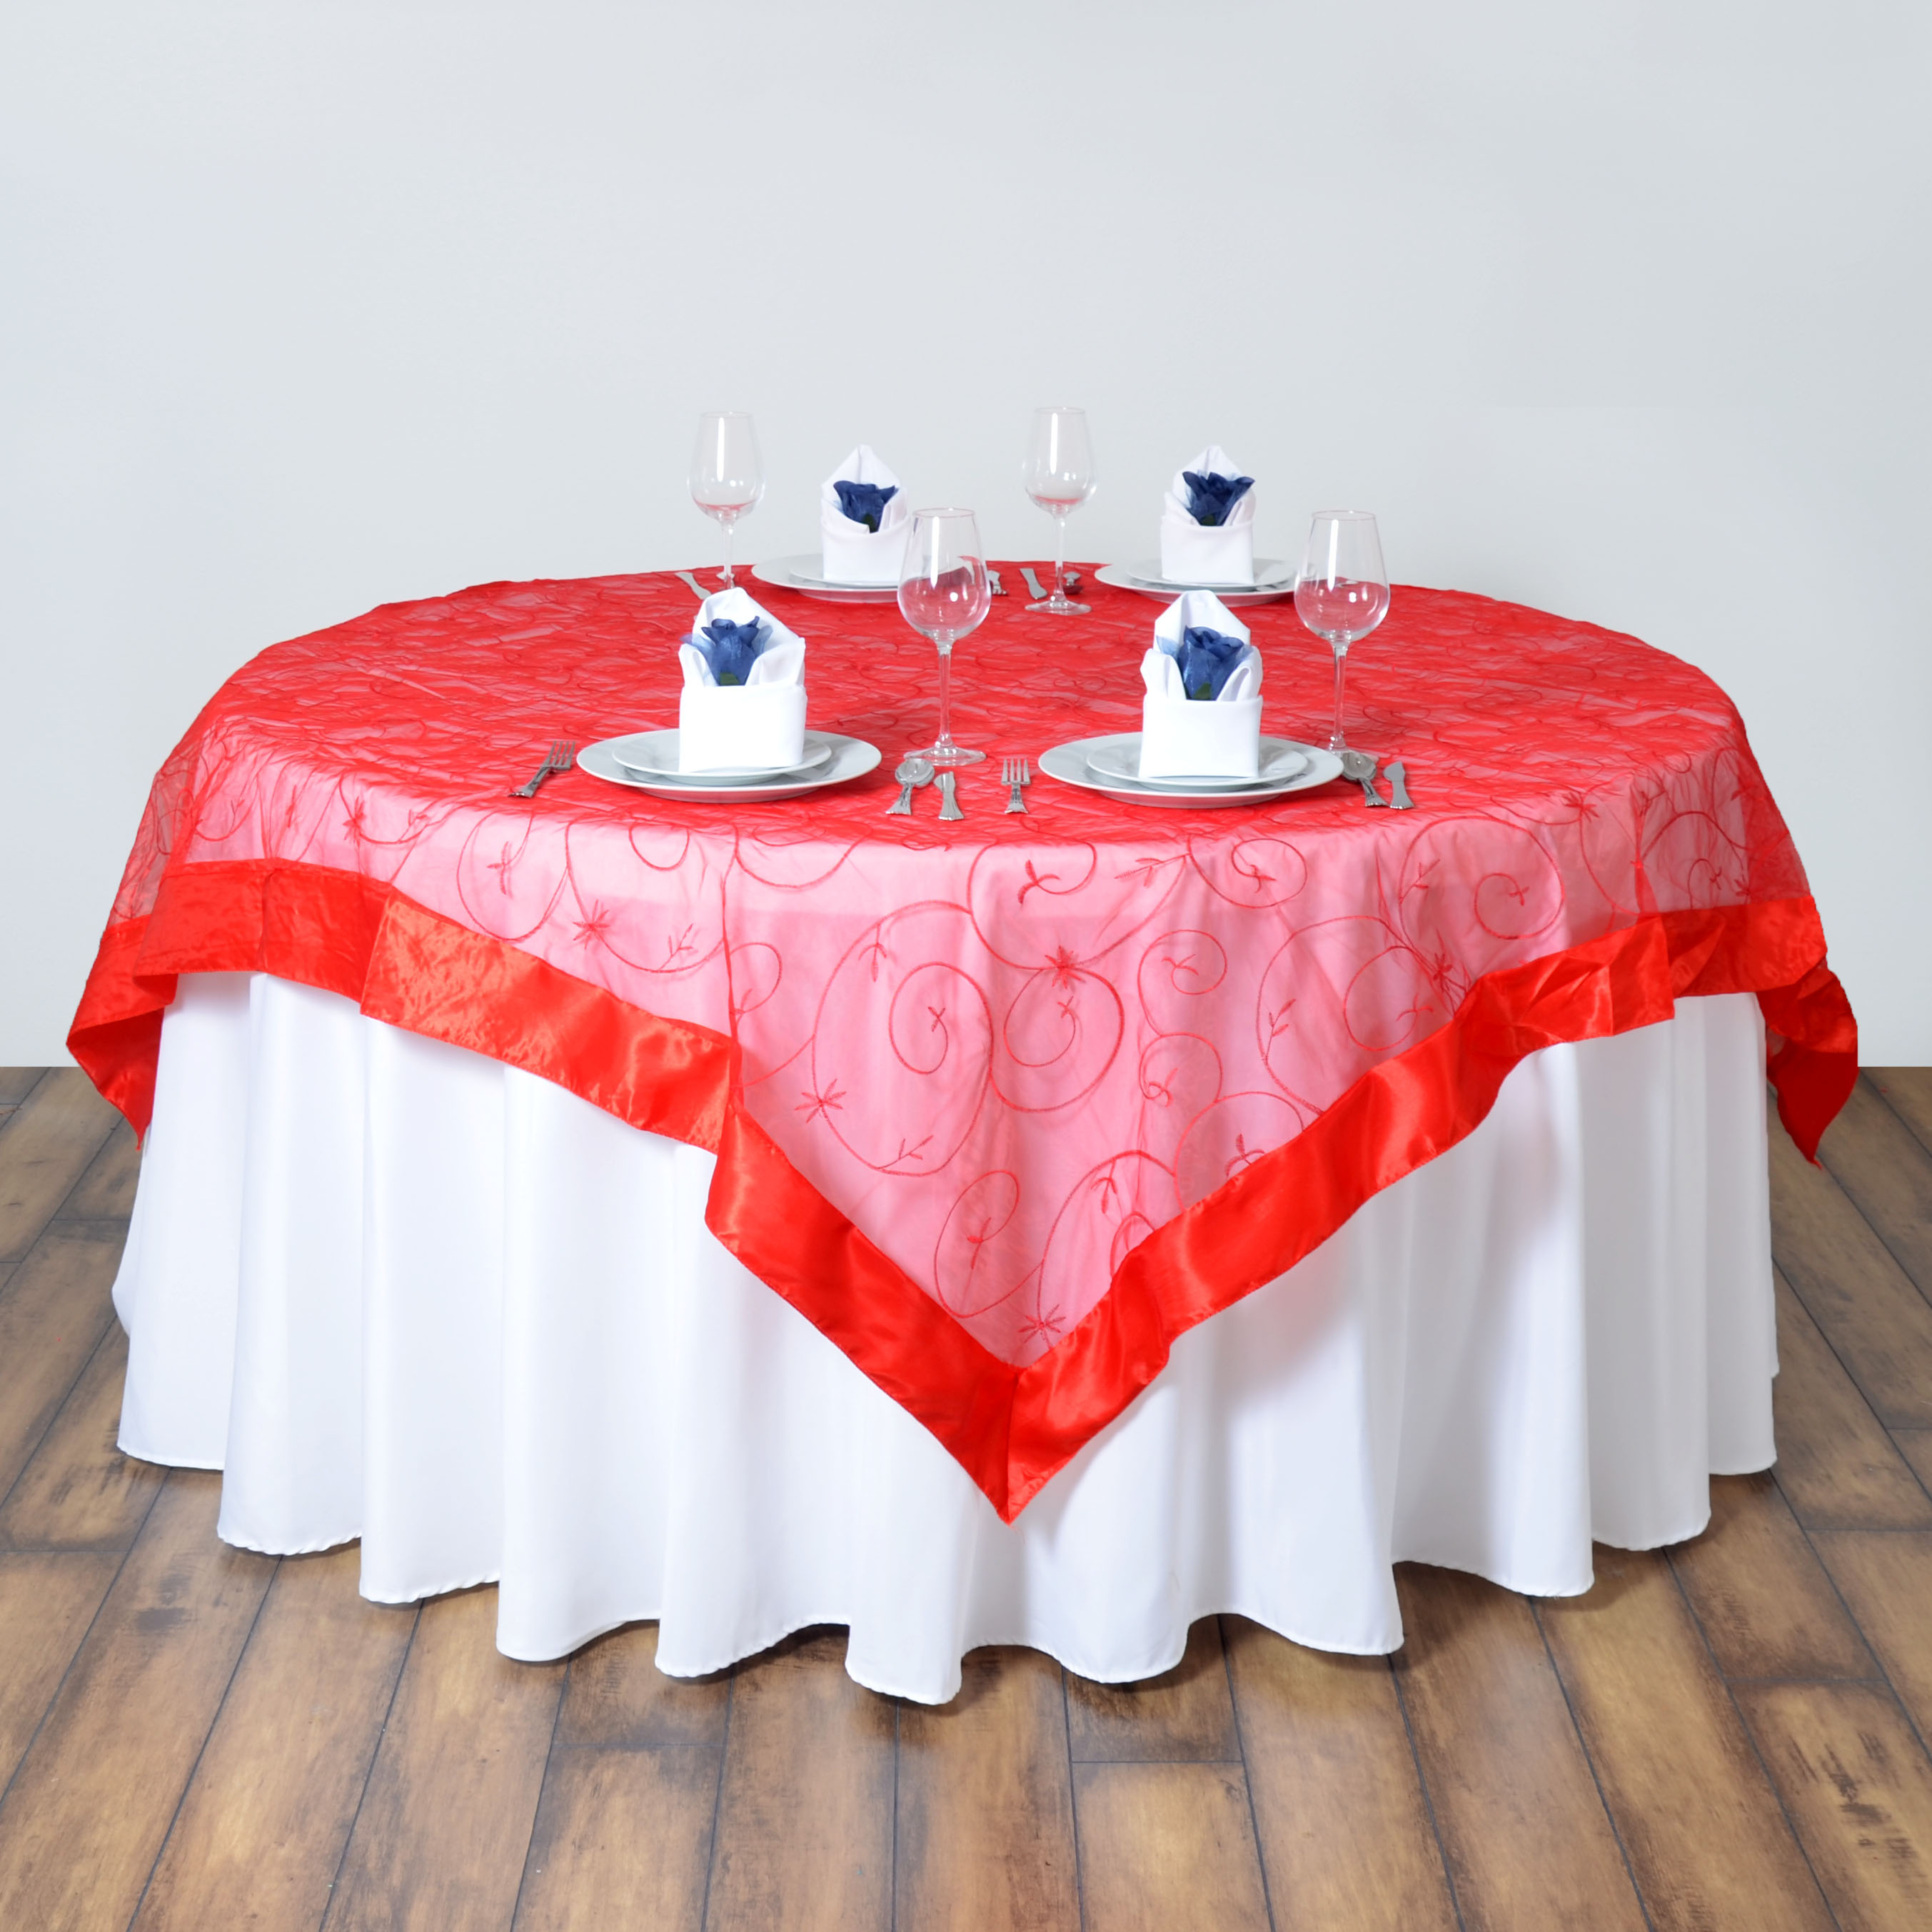 6 Pcs 72x72 Embroidered Sheer Organza Table Overlay Wedding Party